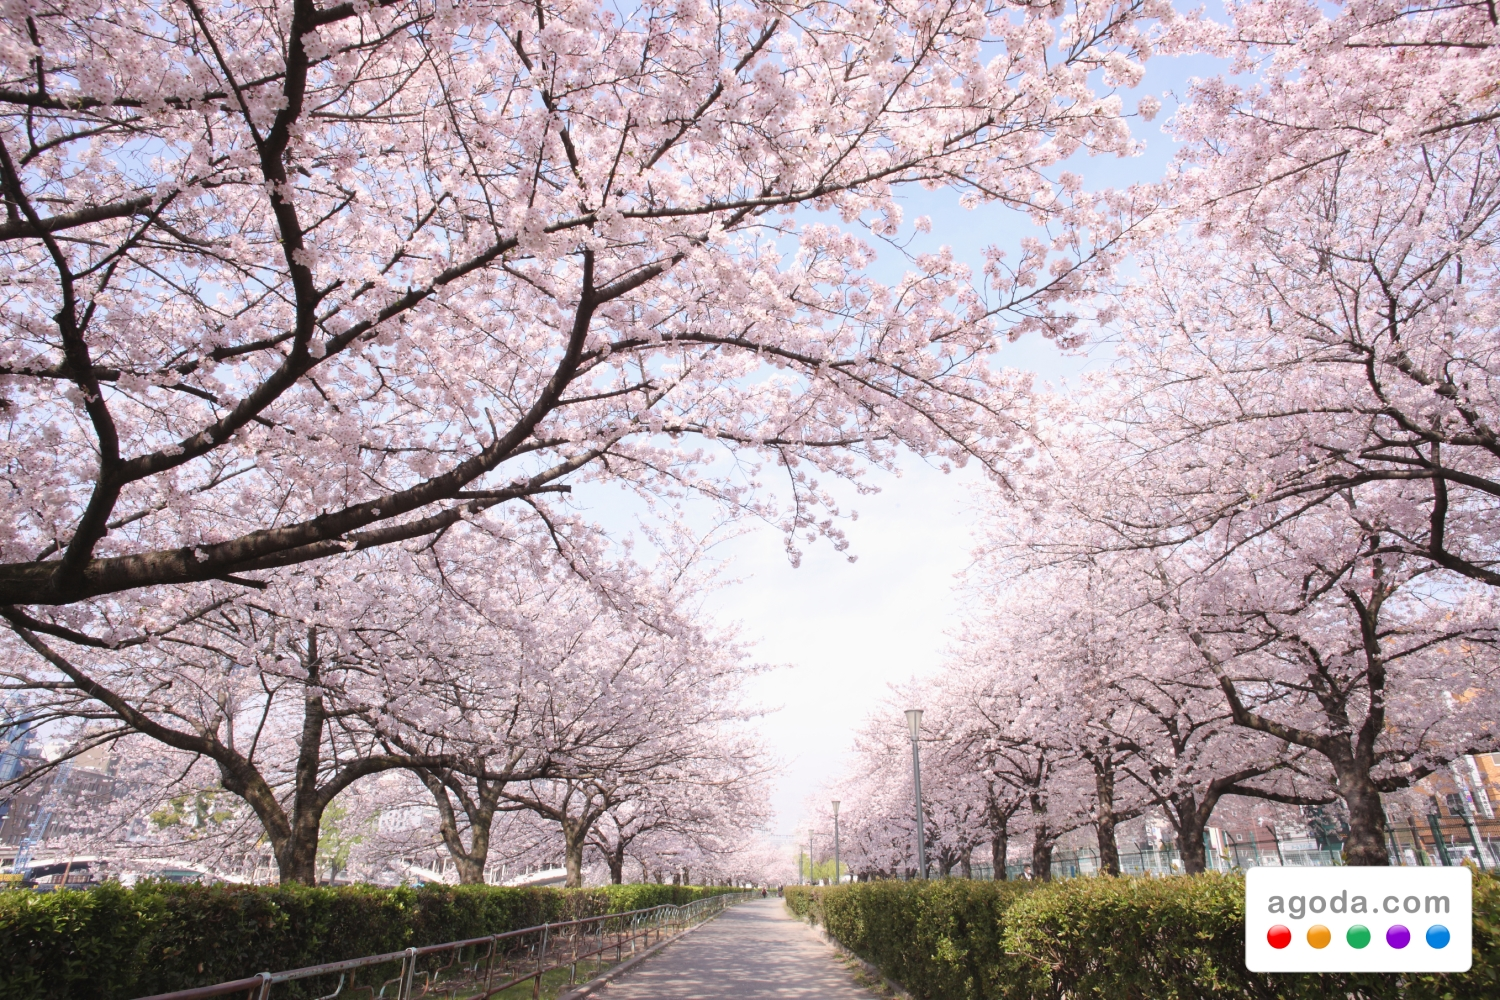 agodacom readies accommodation specials for japan�s